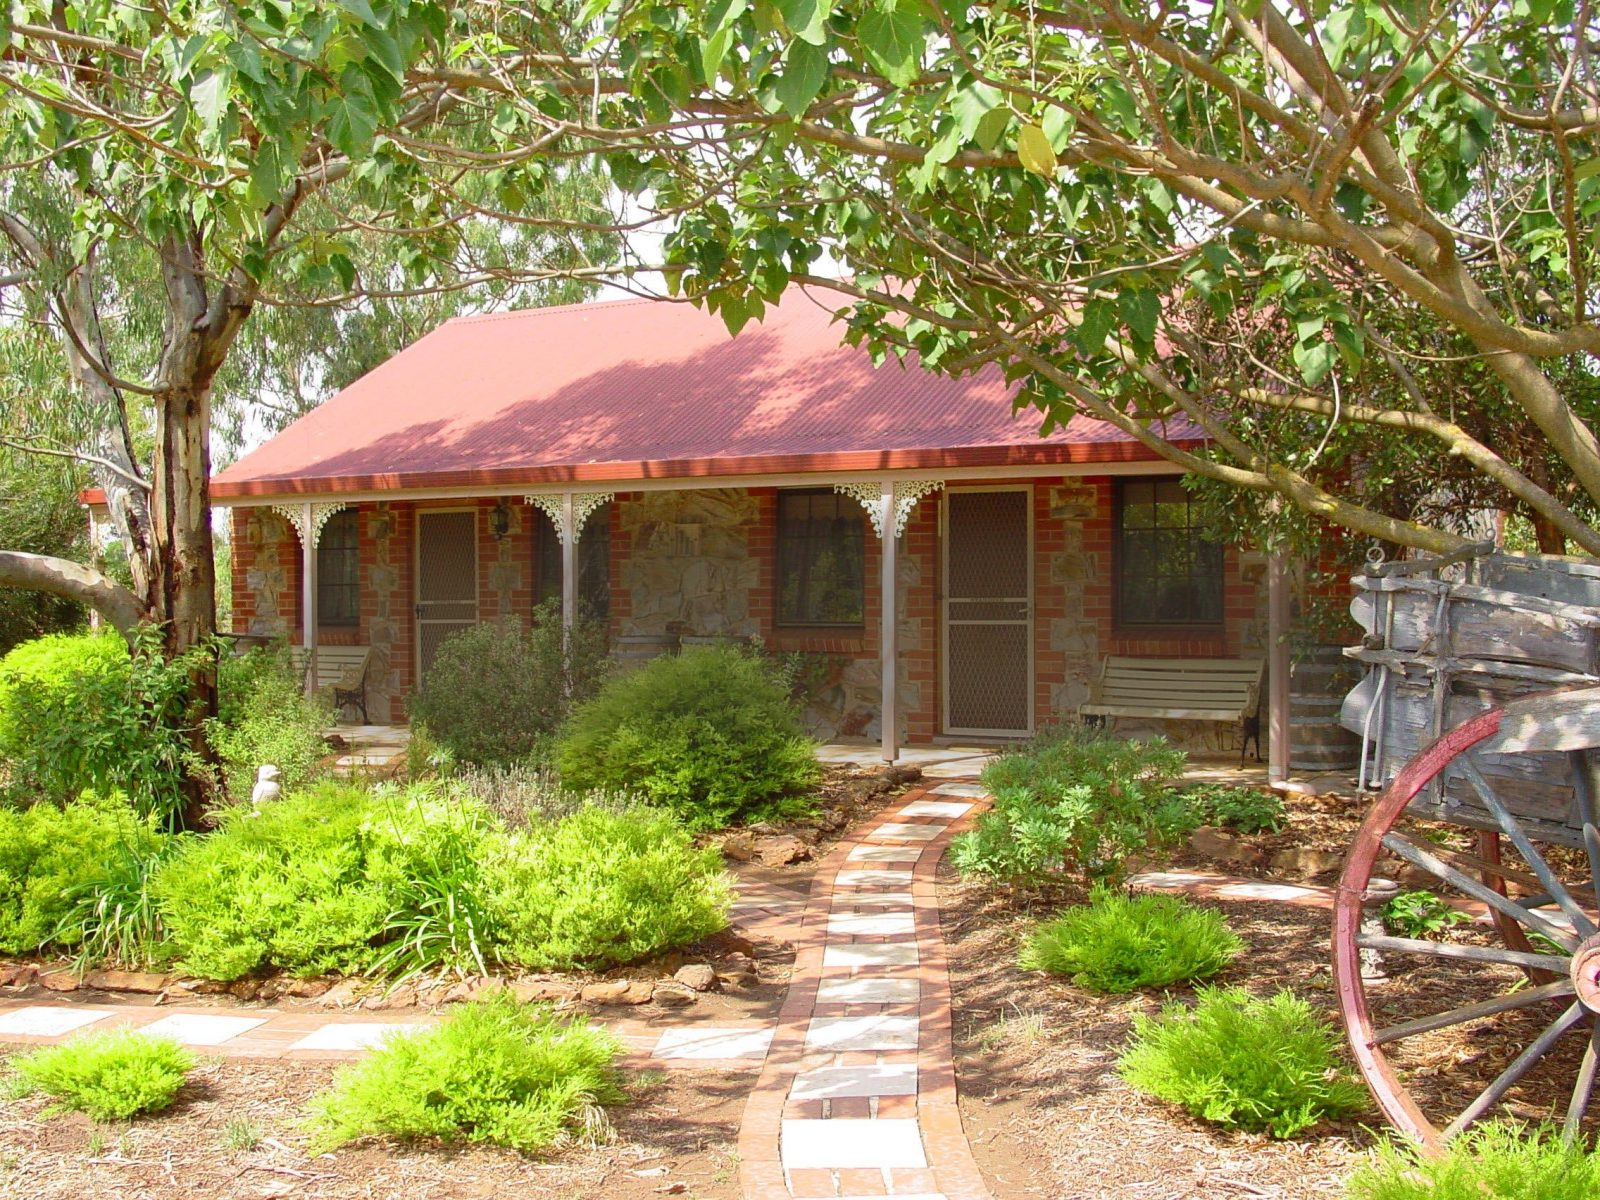 Langmeil Cottages Exterior & Garded Bed & Breakfast in the Barossa Valley